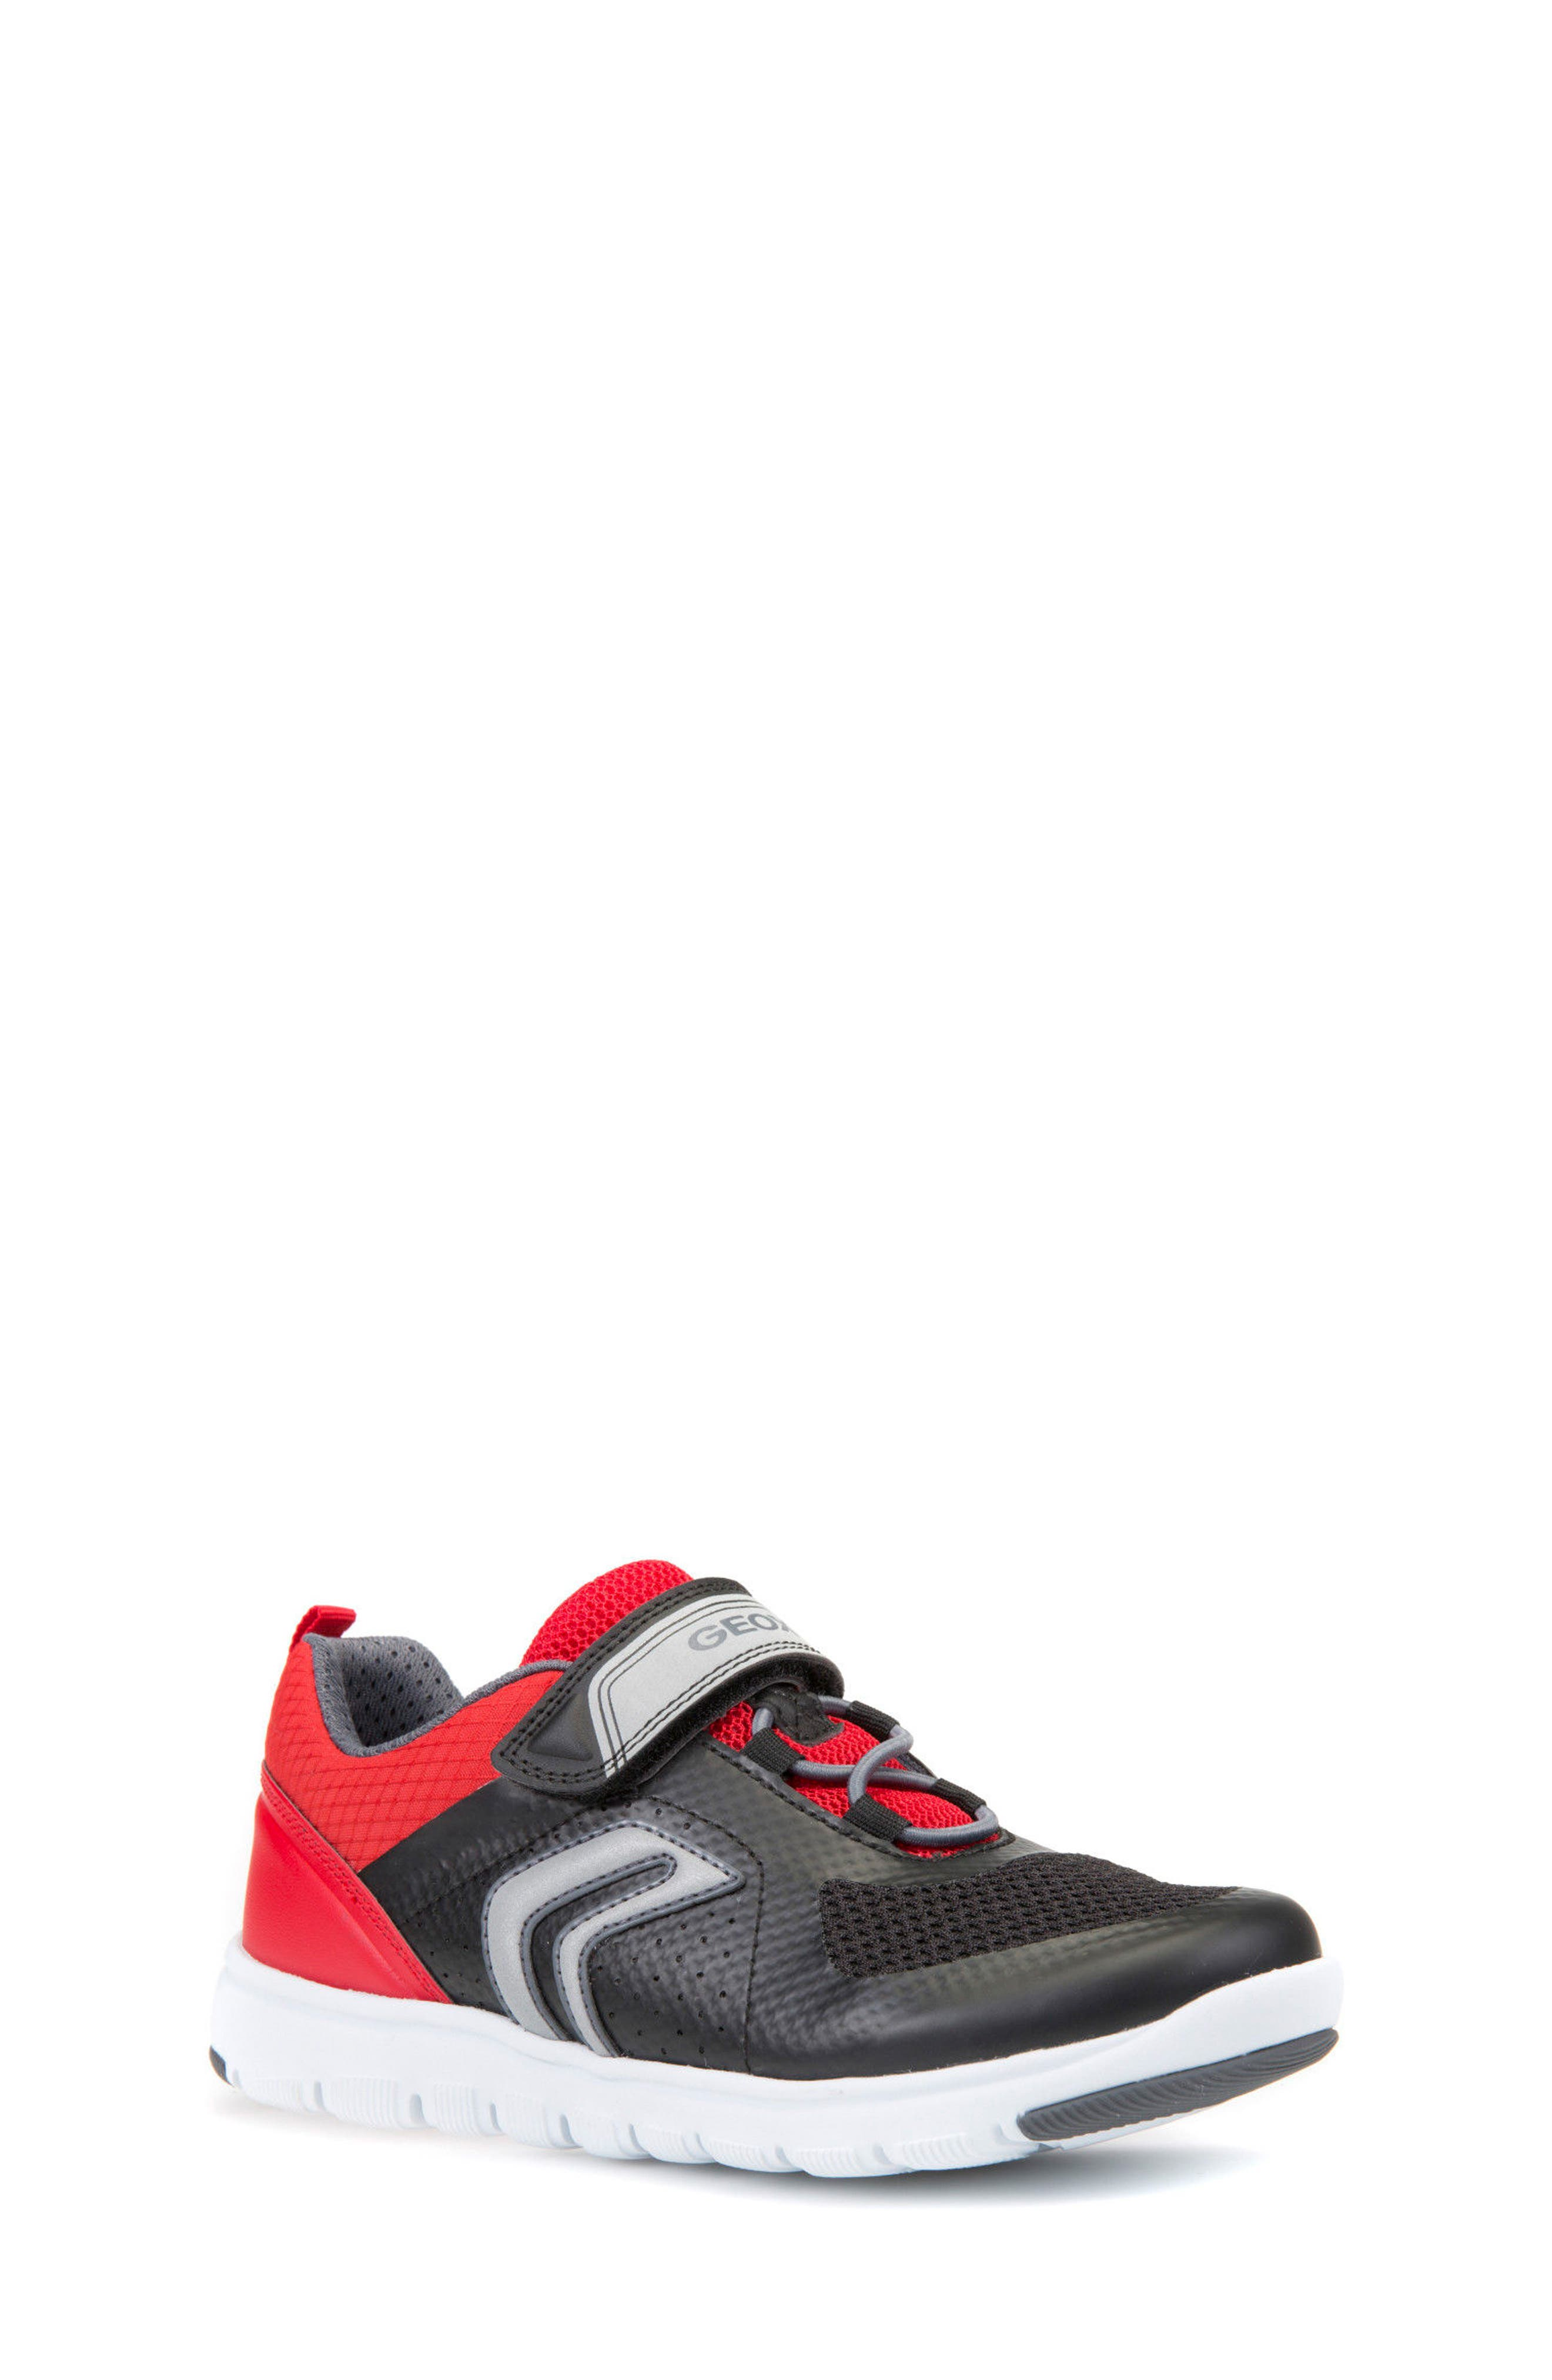 Xunday Low Top Sneaker,                             Main thumbnail 1, color,                             Black/ Red